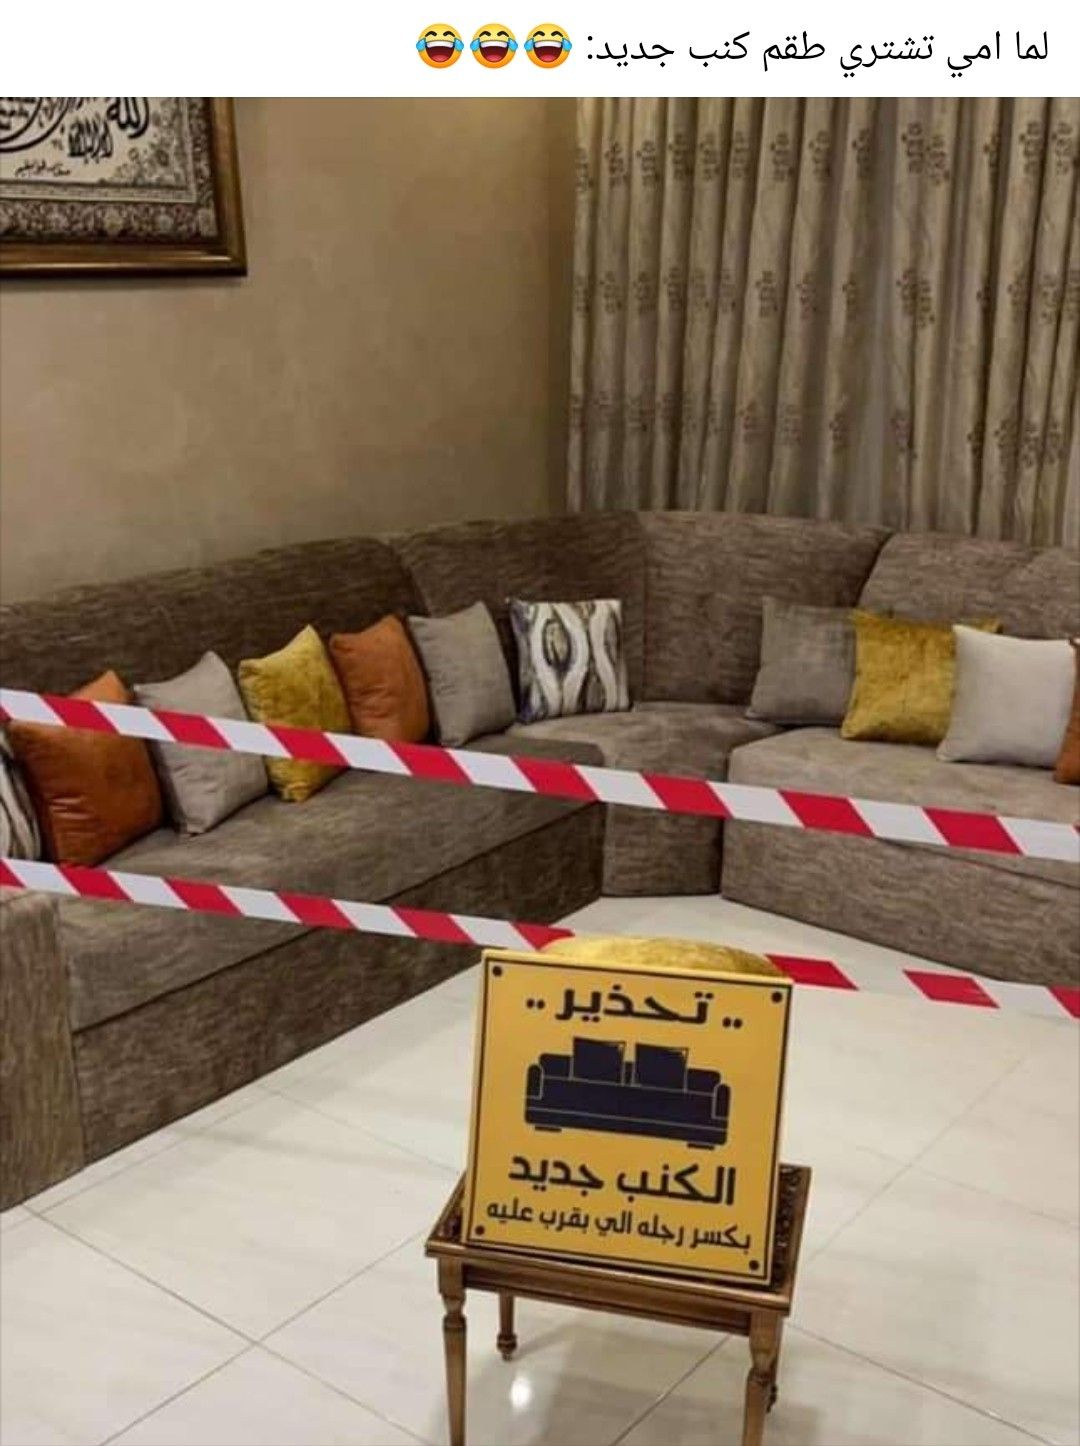 Pin By صورة و كلمة On ابتسامة ᴗ Funny Home Decor Sectional Couch Decor